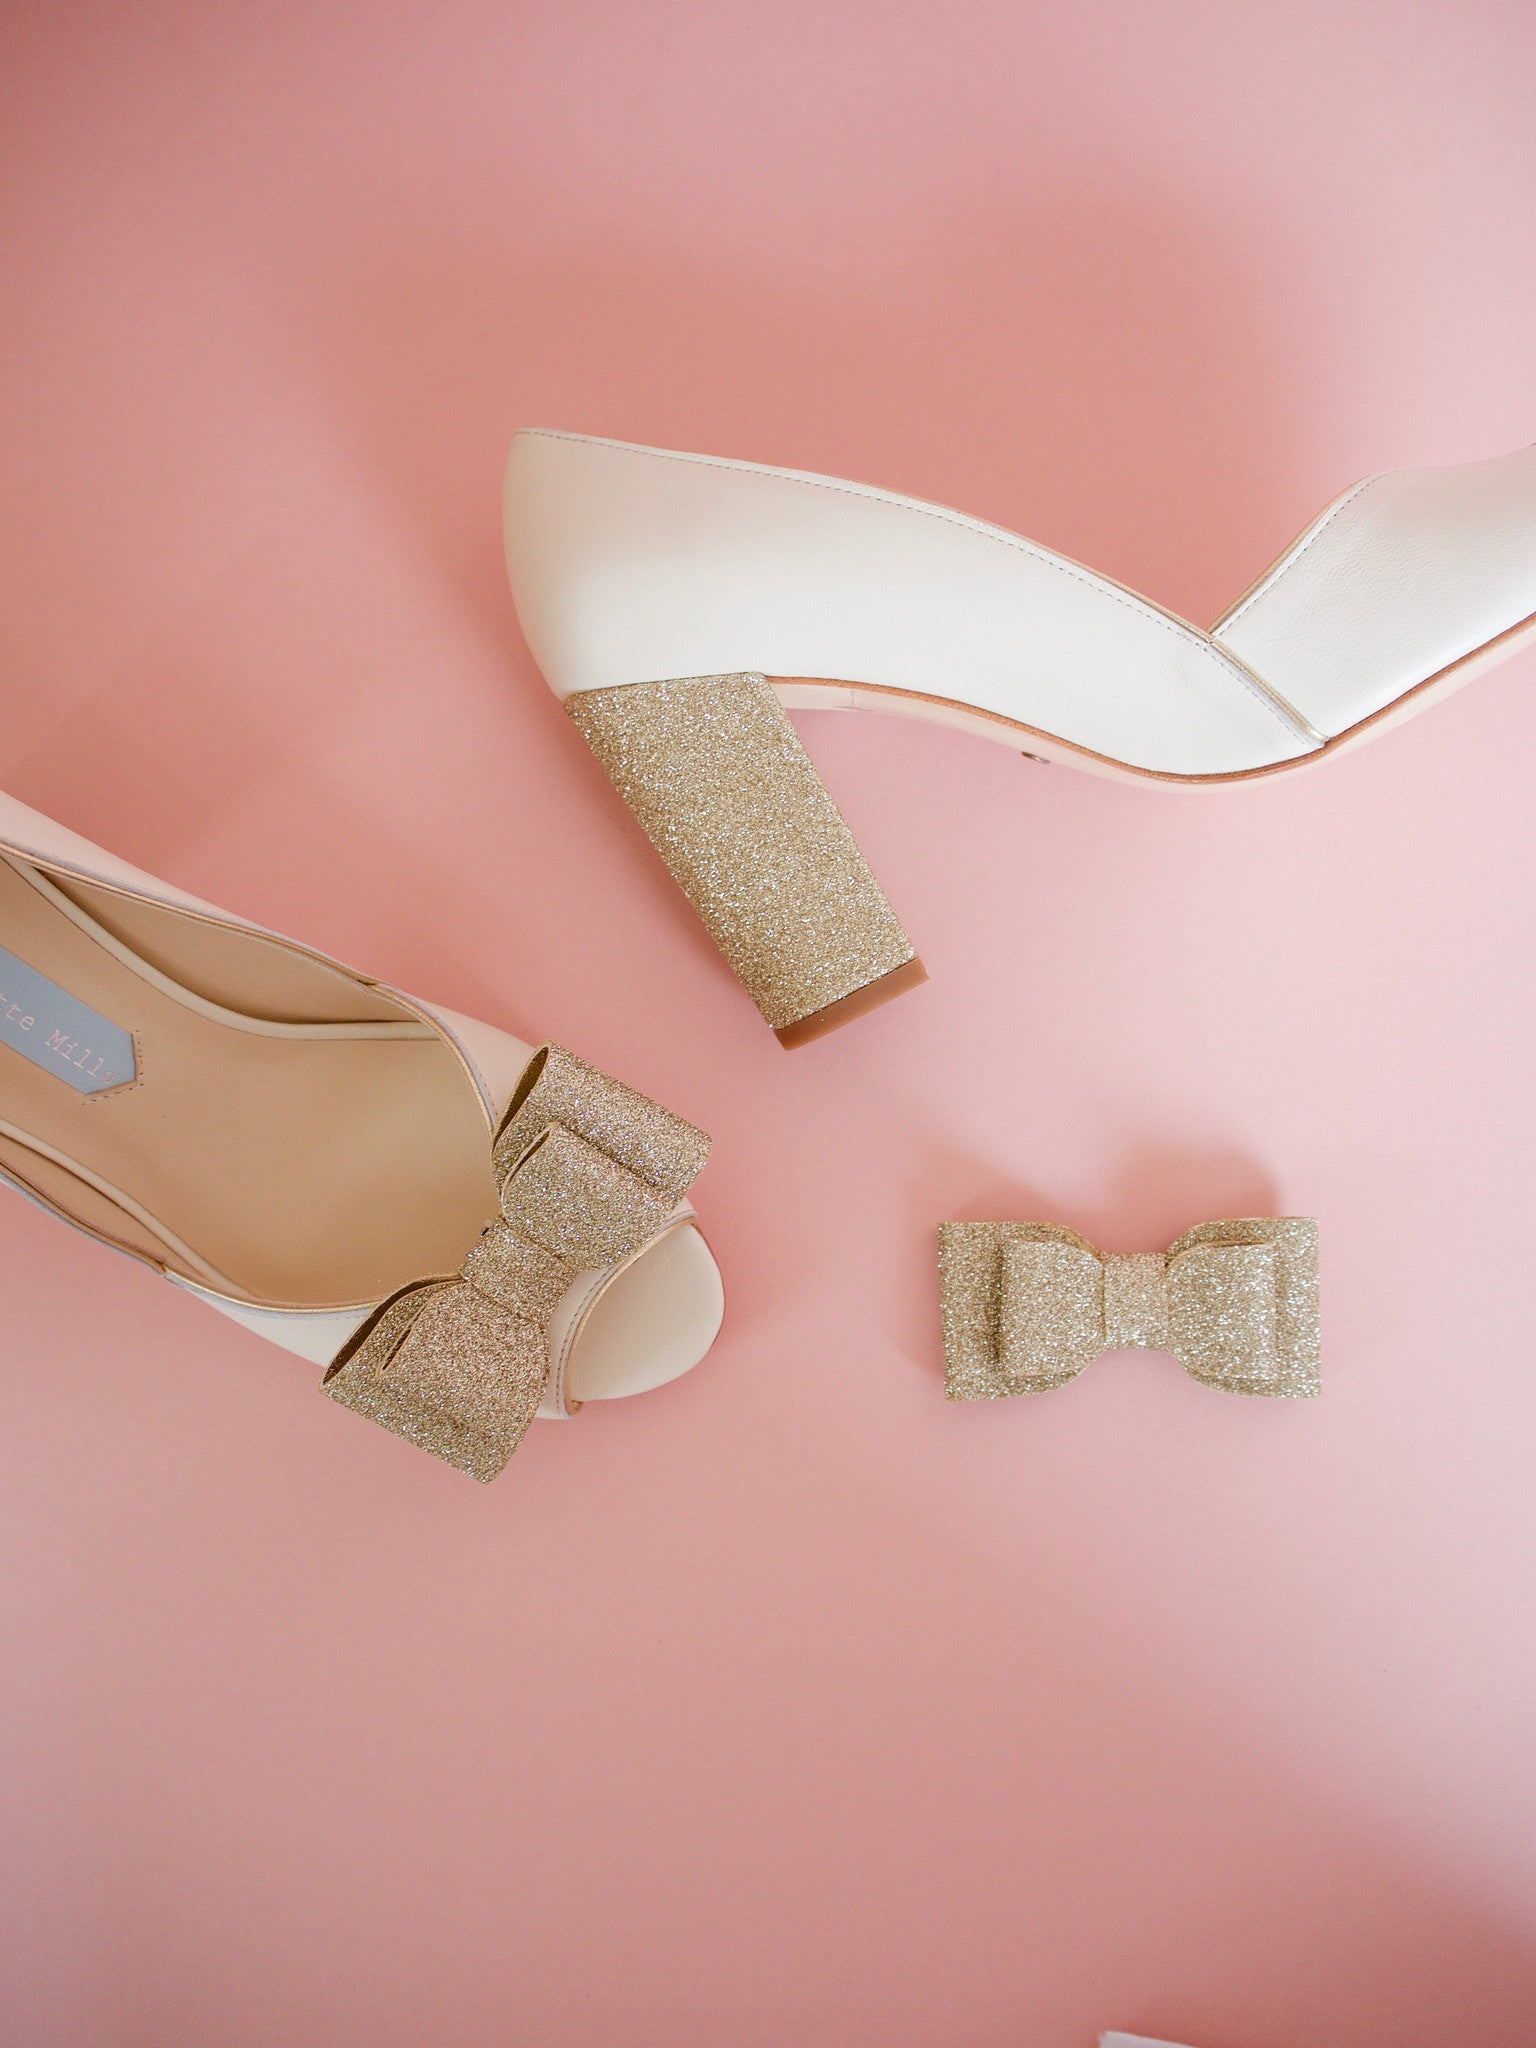 charlotte-mills-andrea-gold-glitter-bow-shoe-clips